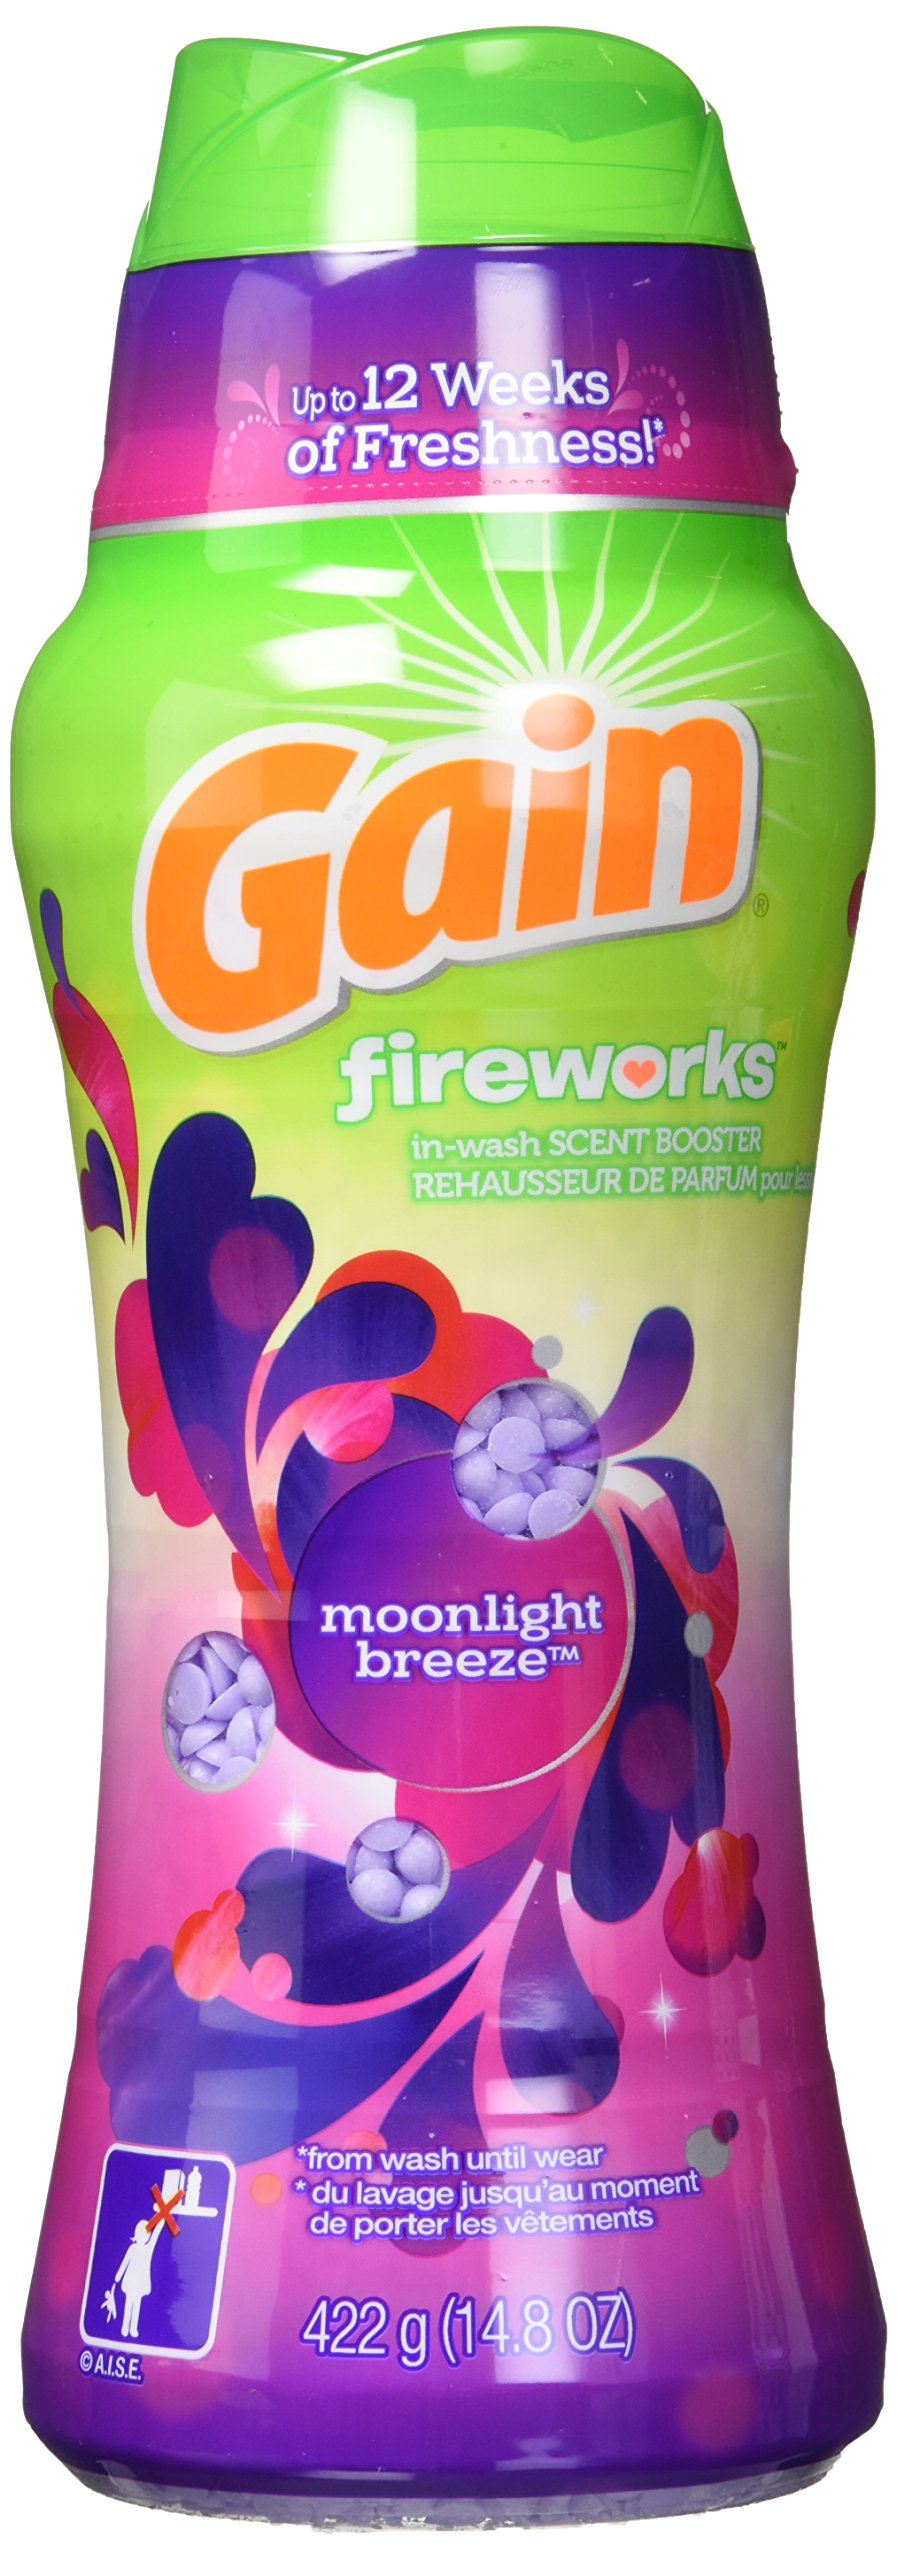 Gain Fireworks In-Wash Scent Booster Beads, Moonlight Breeze, 14.8 Ounce